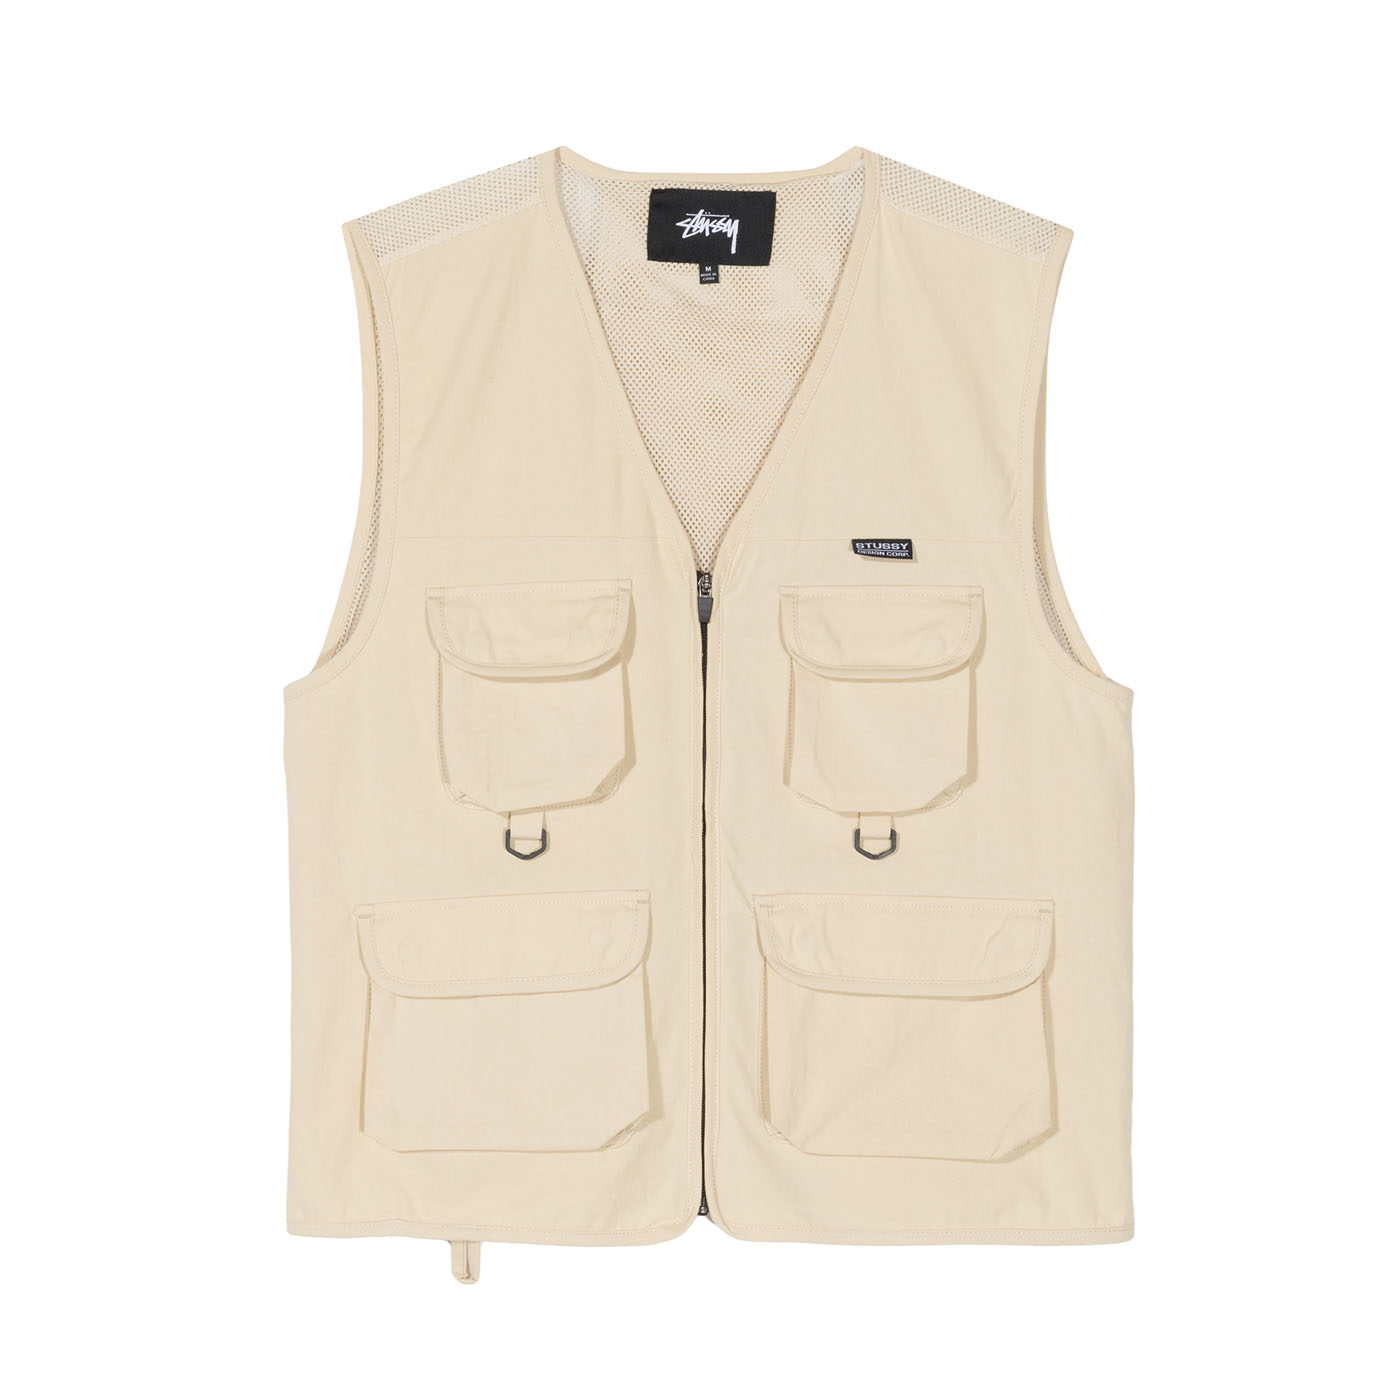 Stussy Extra Fly Gear - Products - 7.jpg